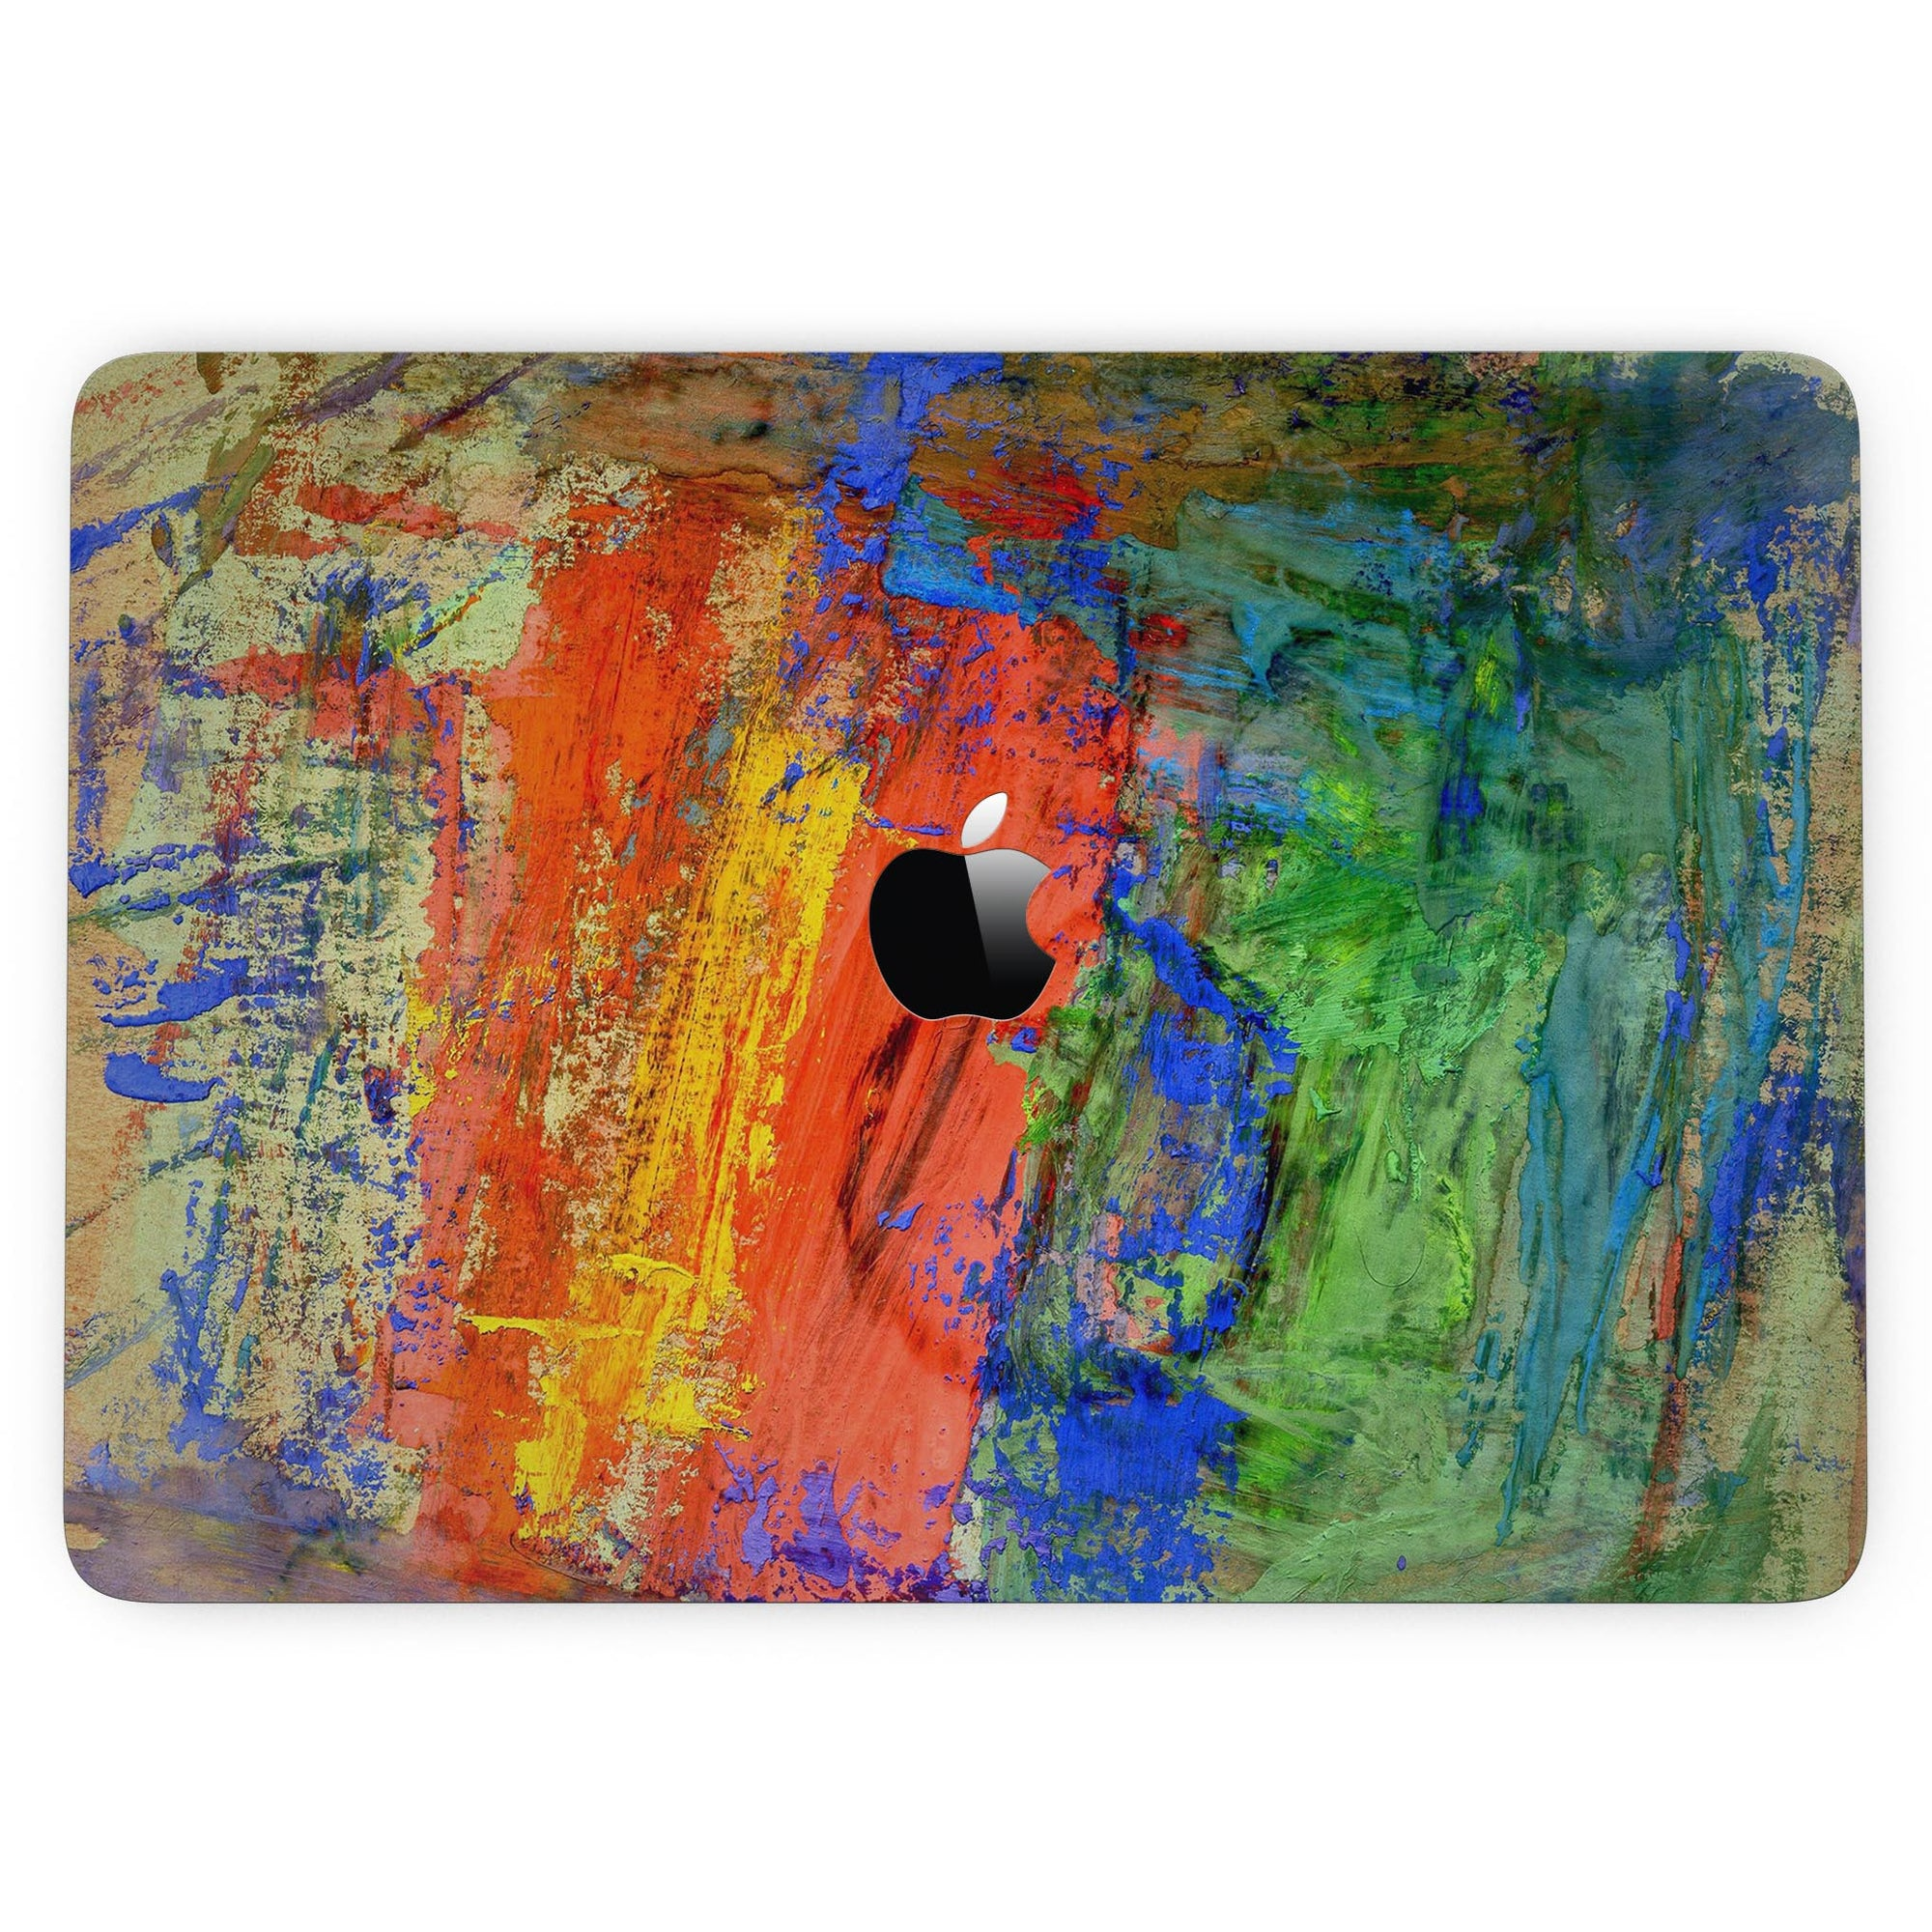 Abstract Bright Primary and Secondary Colored Oil Painting - MacBook Pro  with Touch Bar Skin Kit